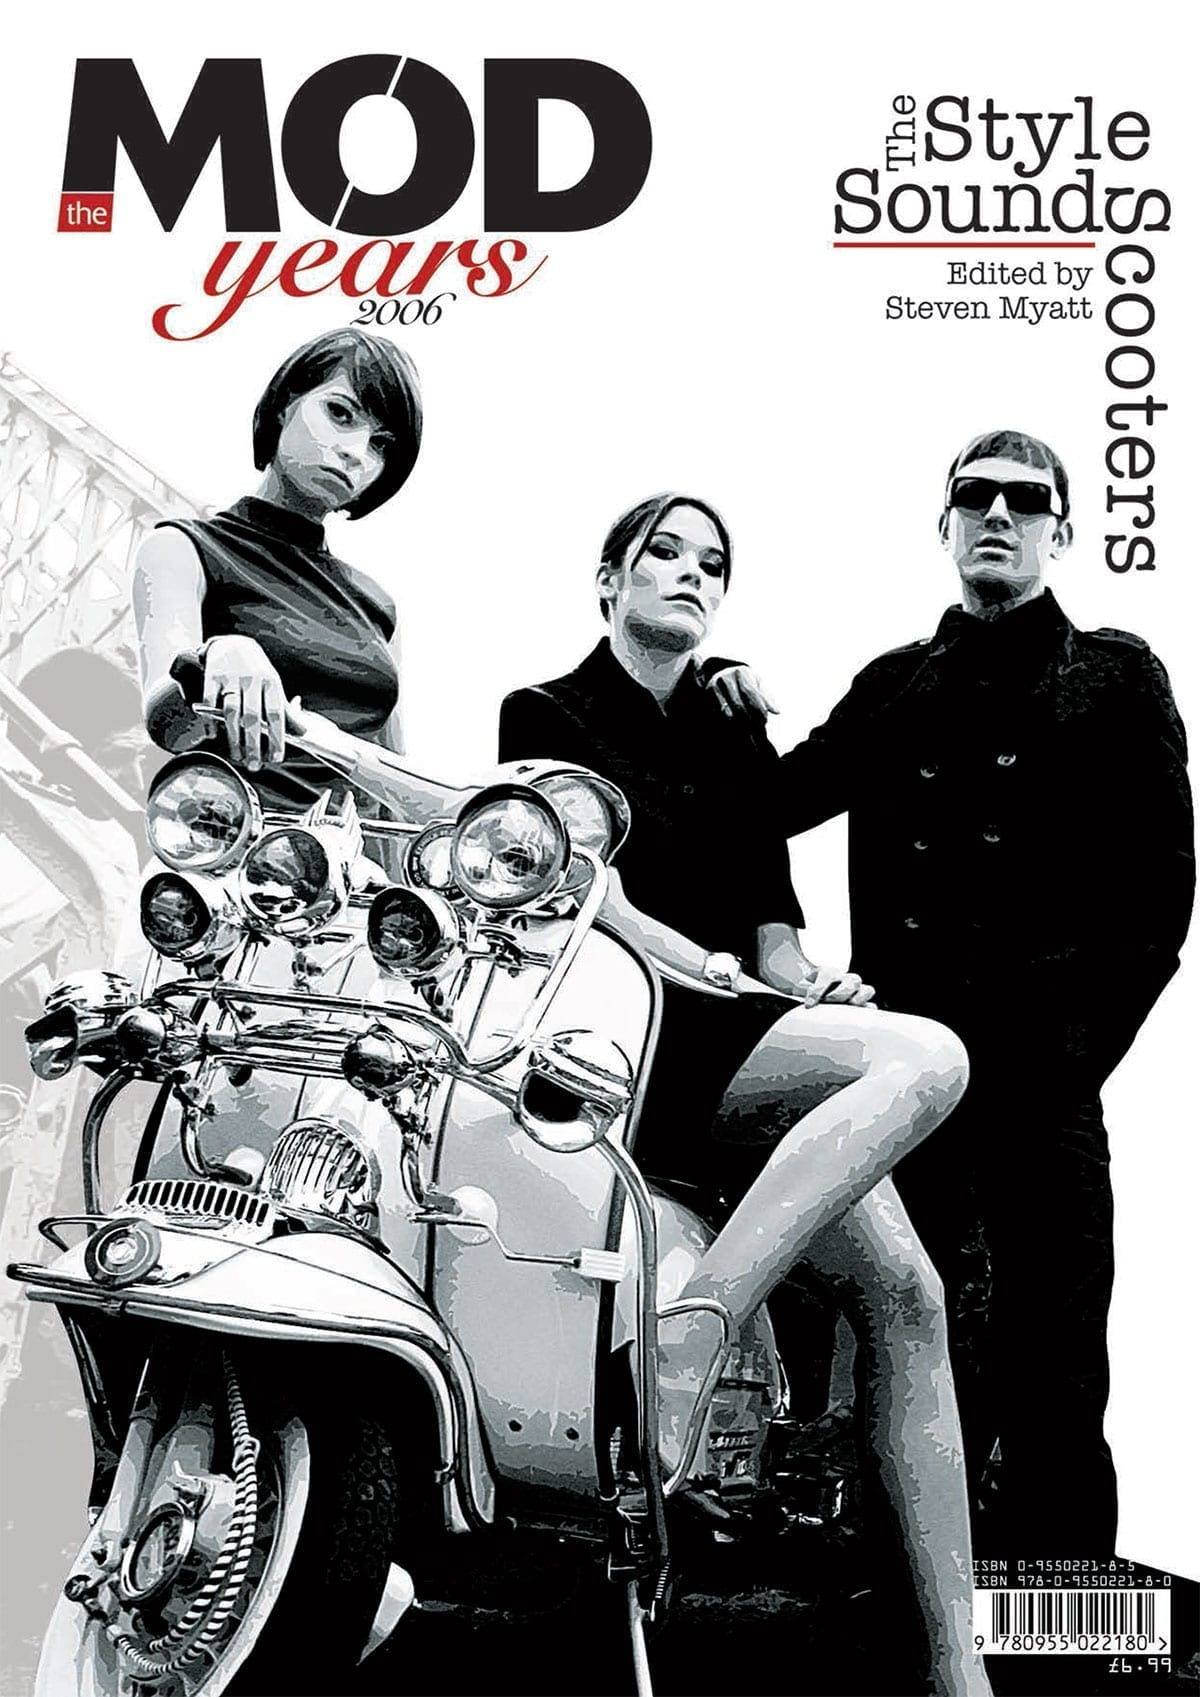 The Mod Years